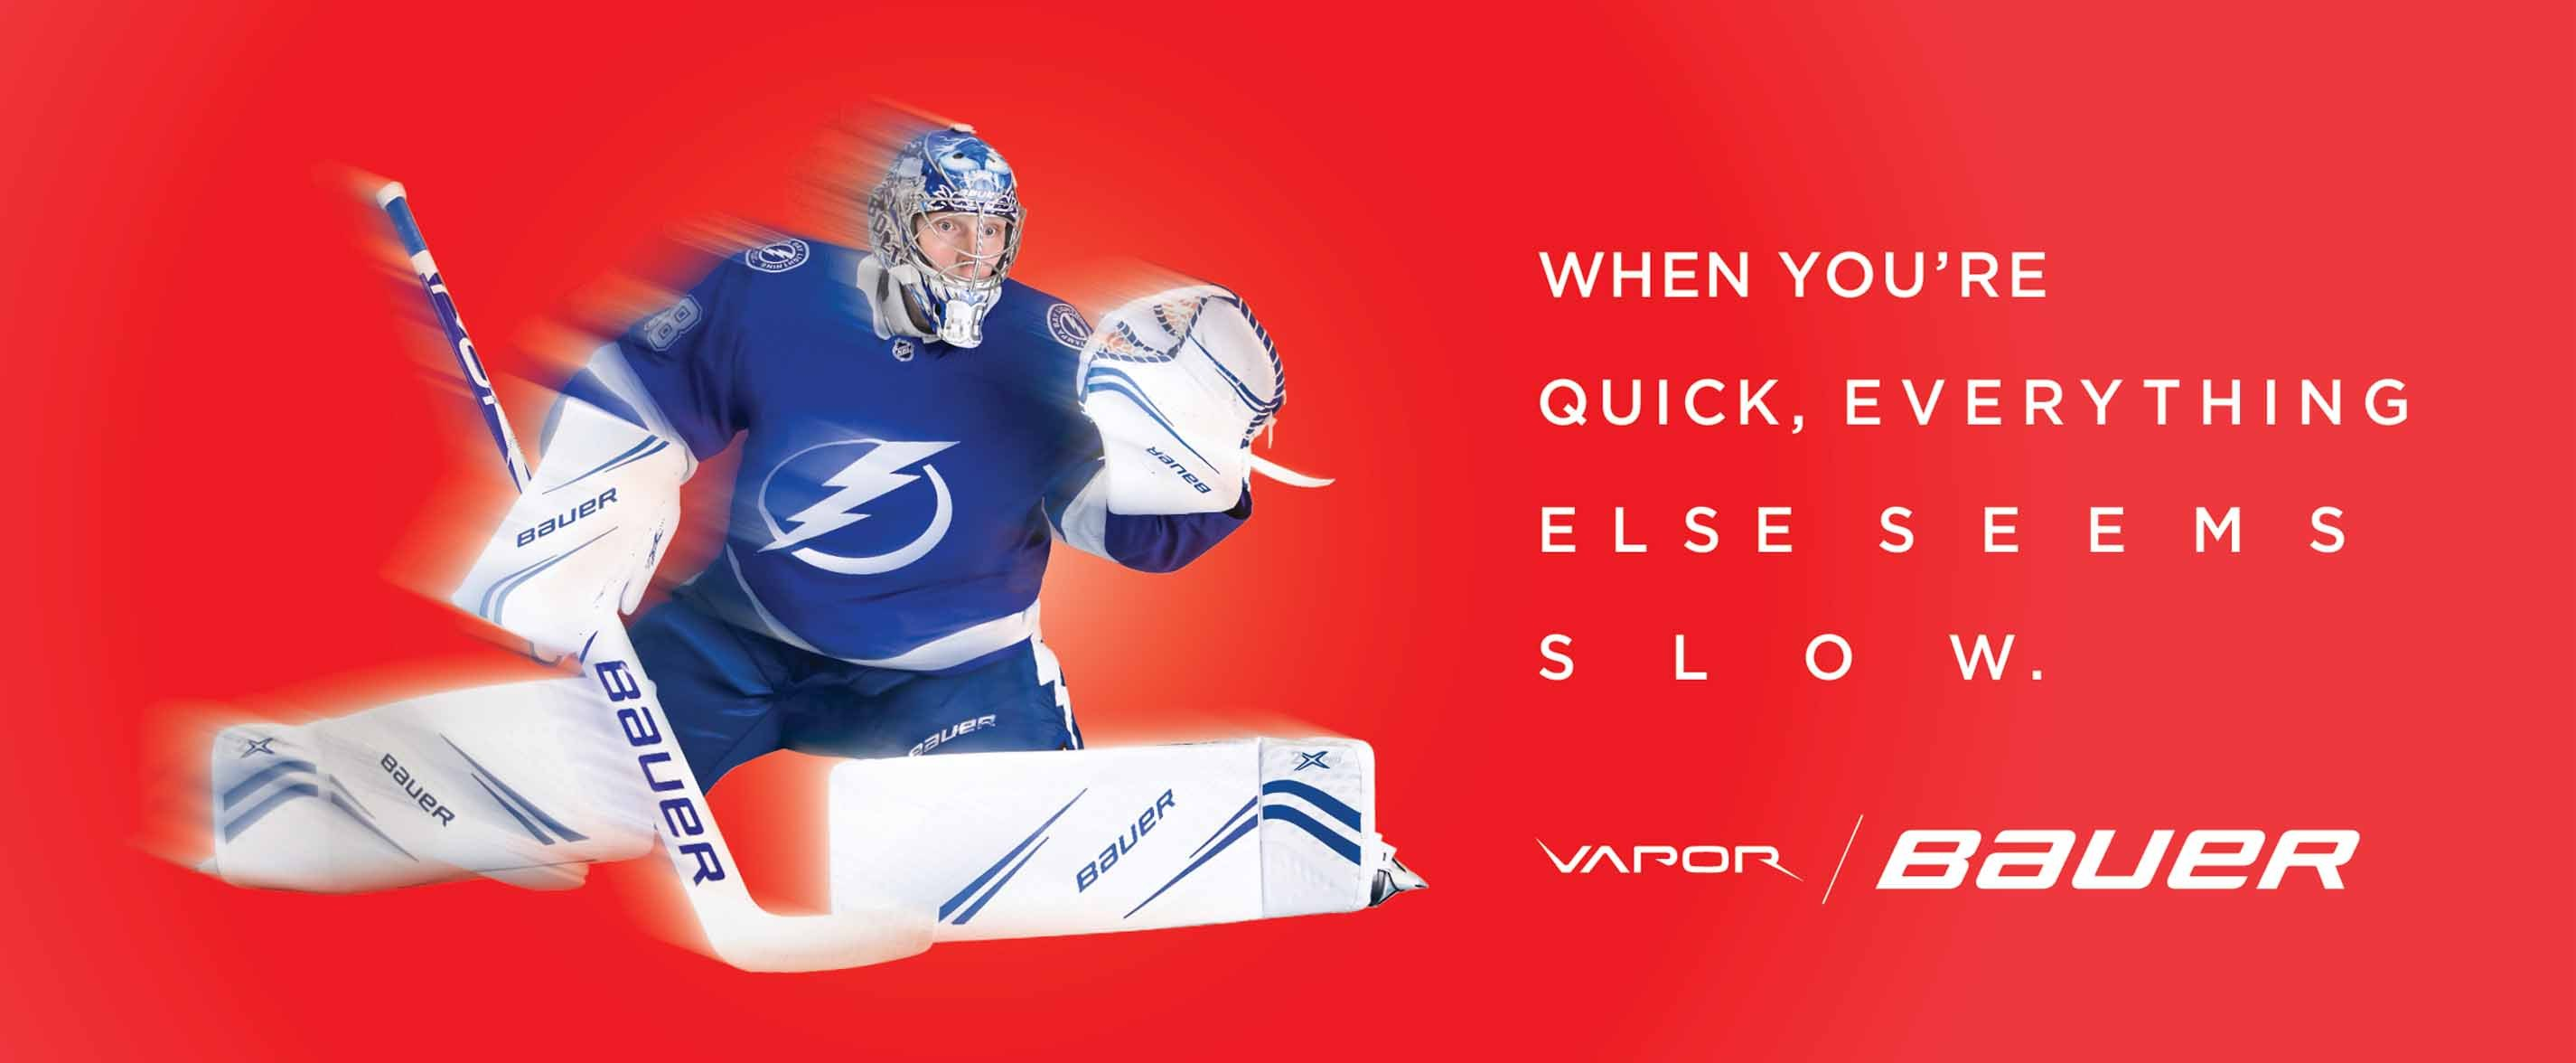 Bauer Vapor Goalie Season 19